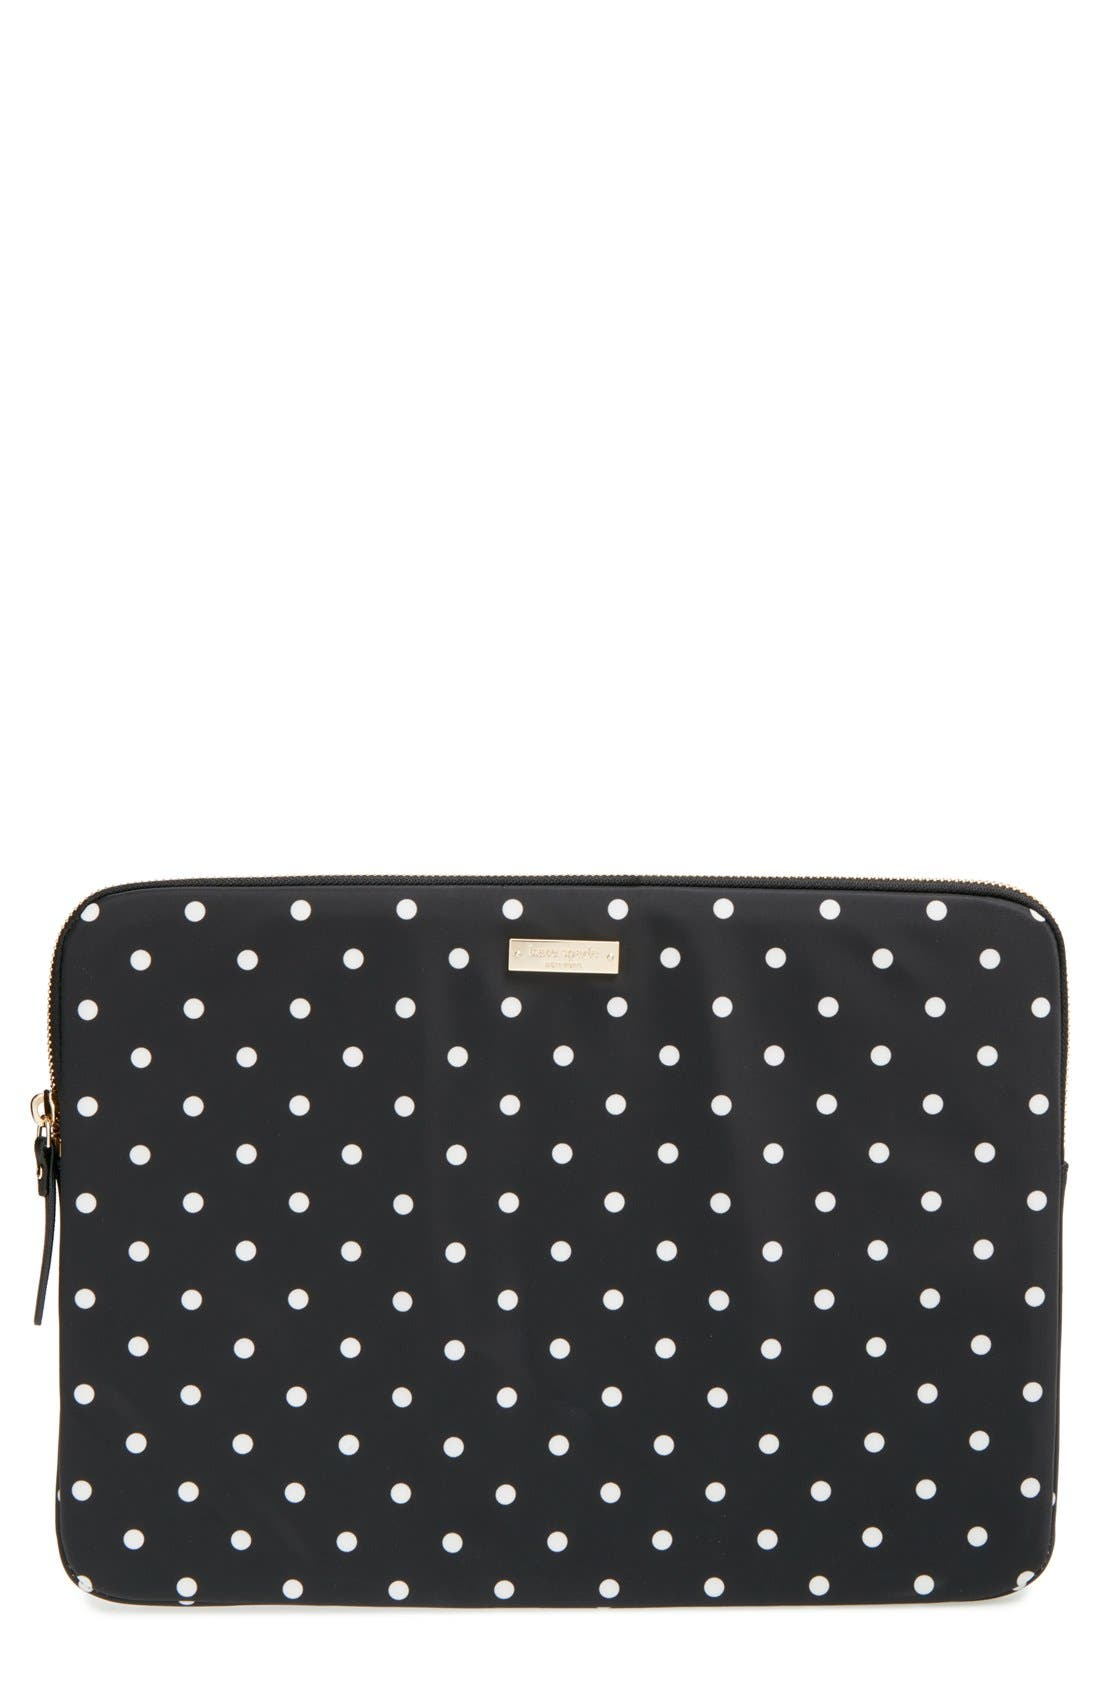 KATE SPADE NEW YORK 'classic nylon - mini